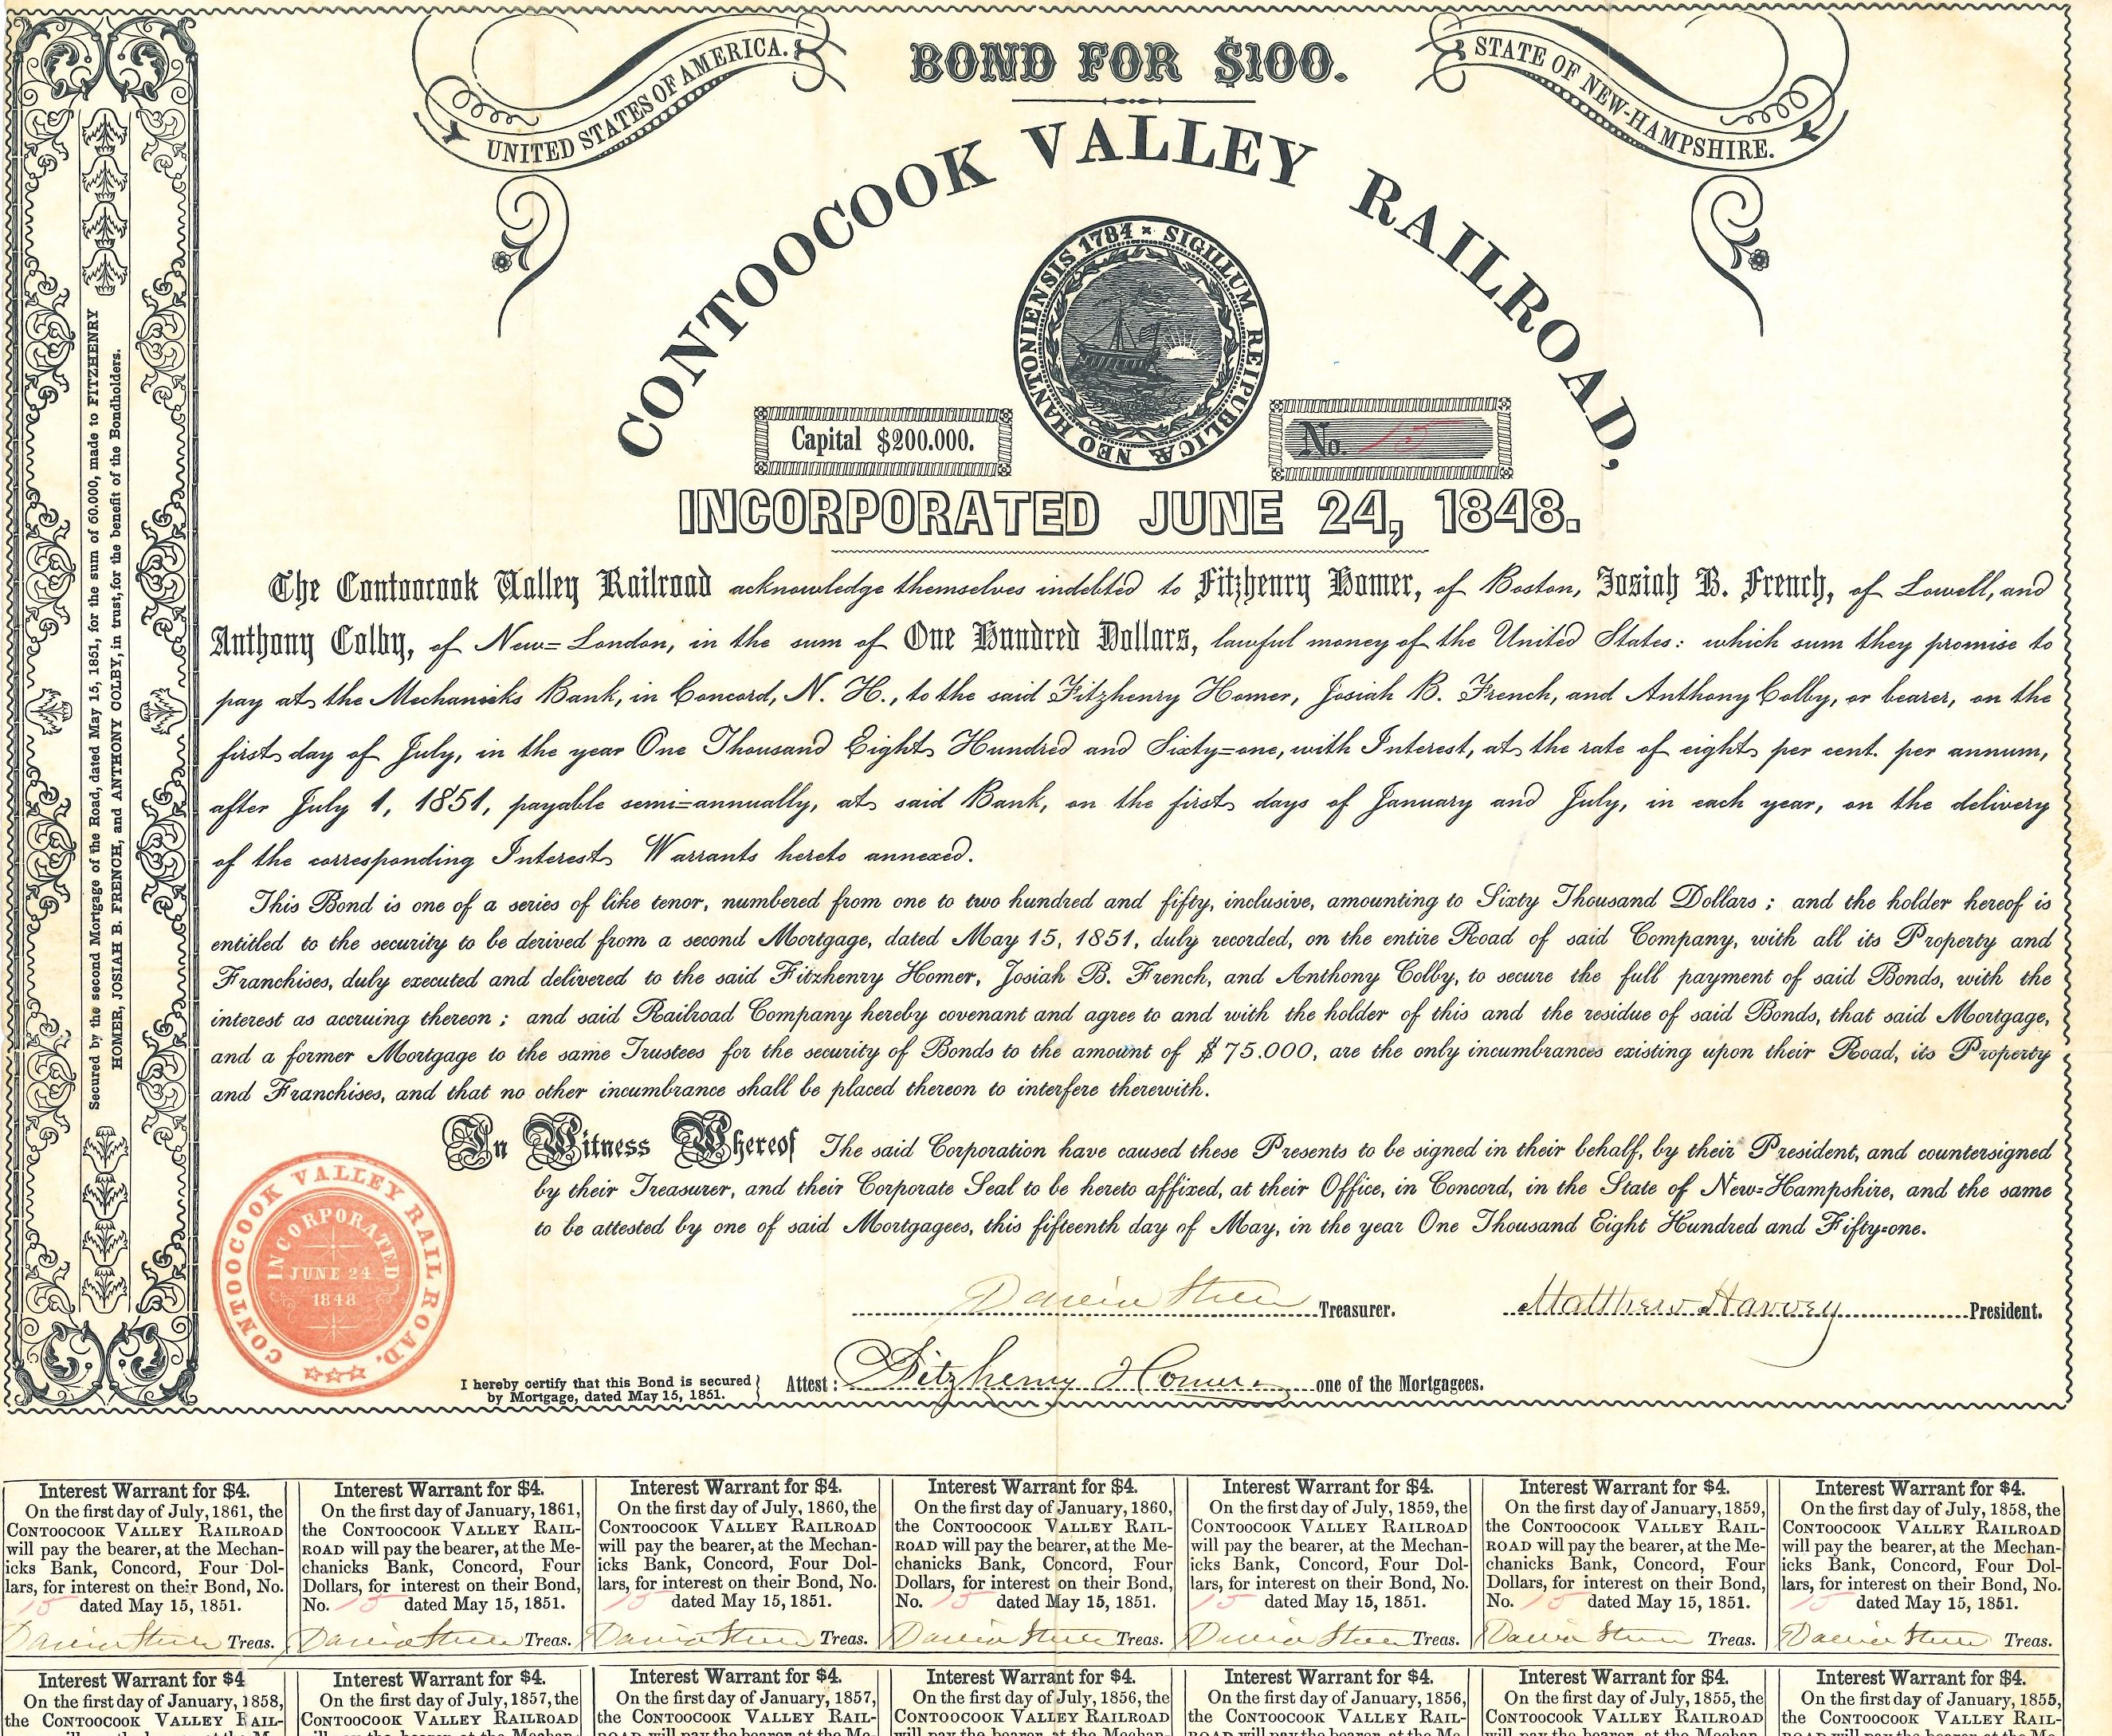 Image of the Contoocook Valley Railroad bond, which offered investors $4 for every $100 bond purchase.